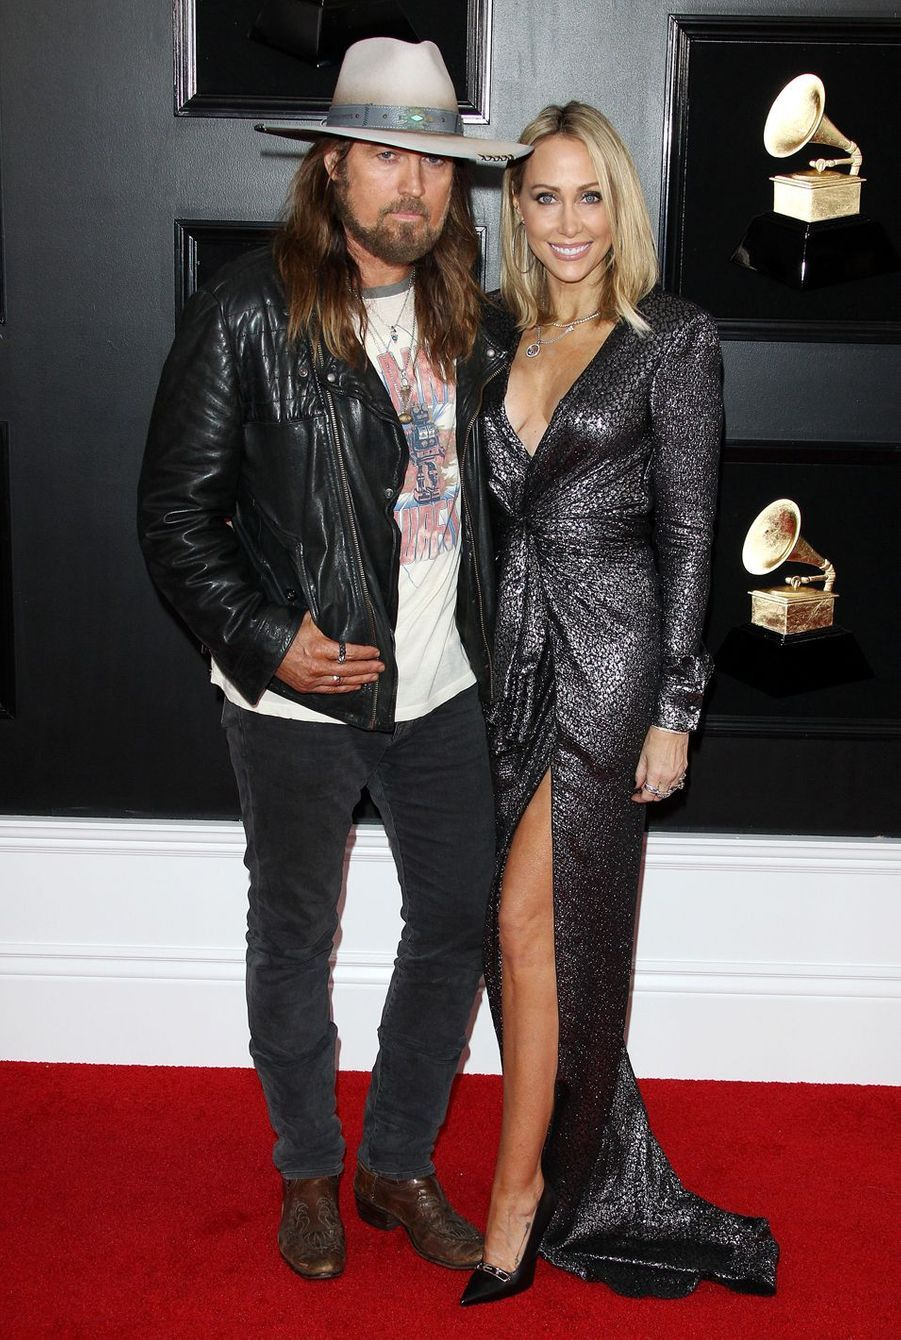 Billy Ray et Tish Cyrus sur le tapis rouge des Grammy Awards à Los Angeles le 9 février 2019